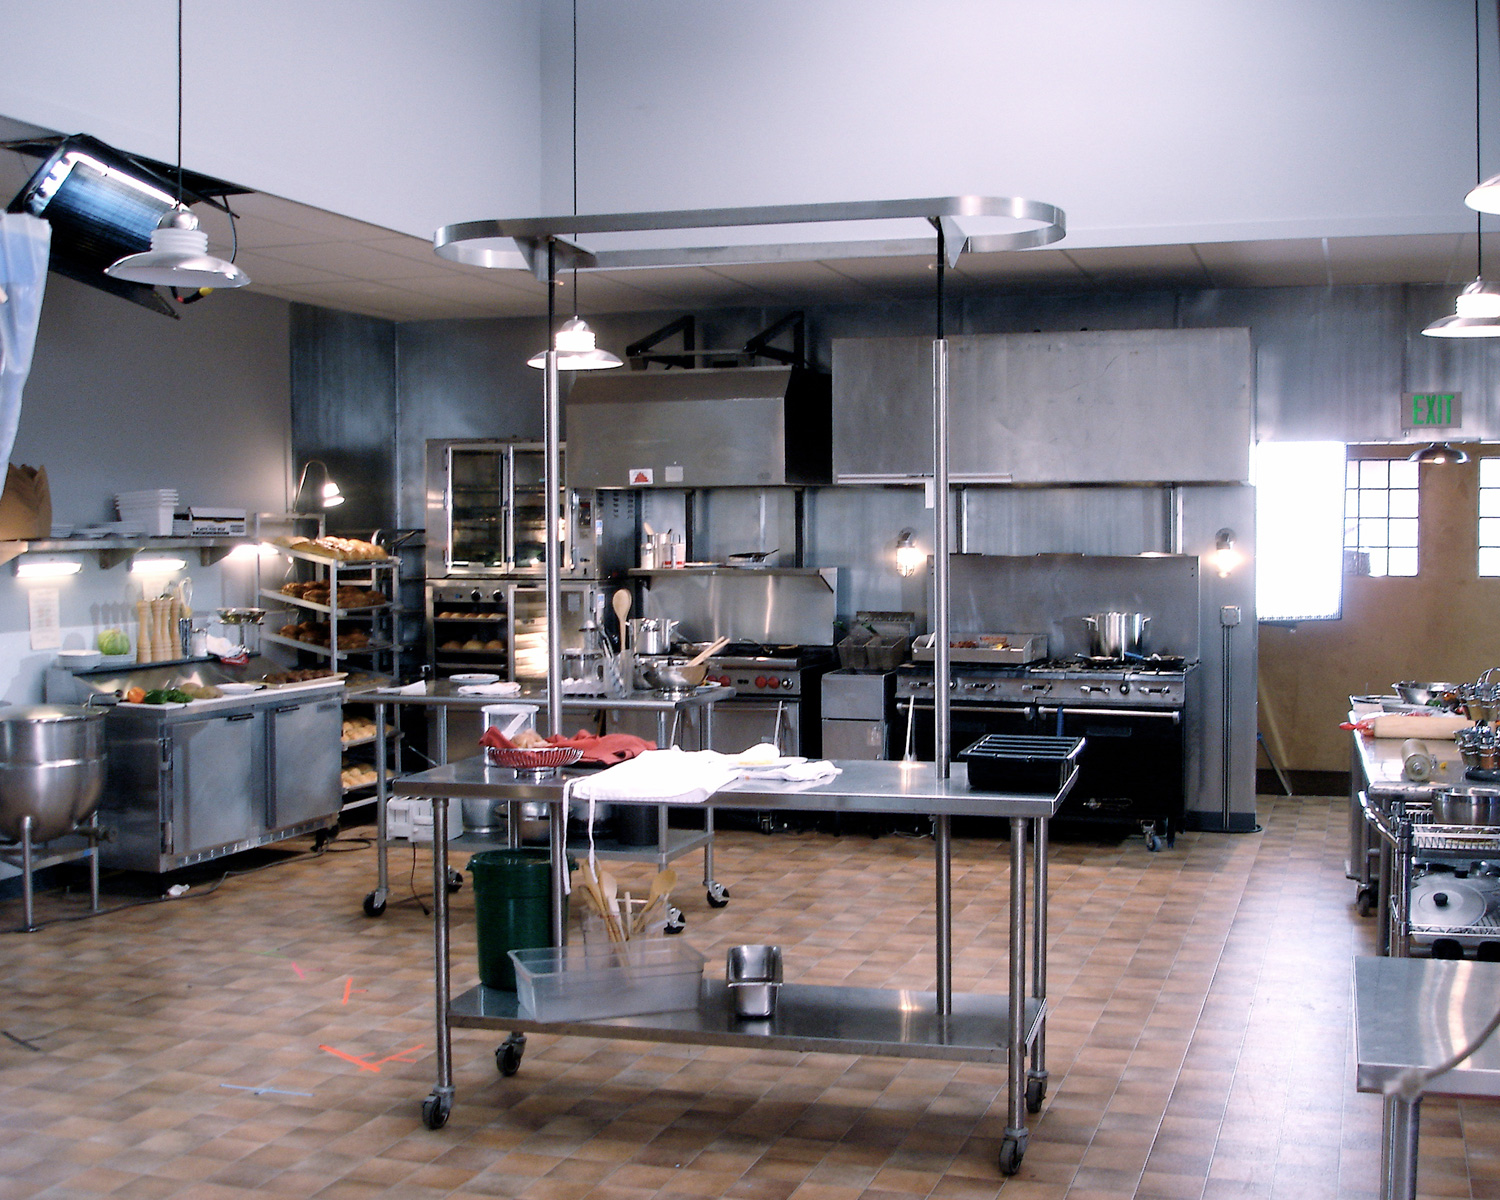 Another view of the Lava Springs Kitchen stage set.